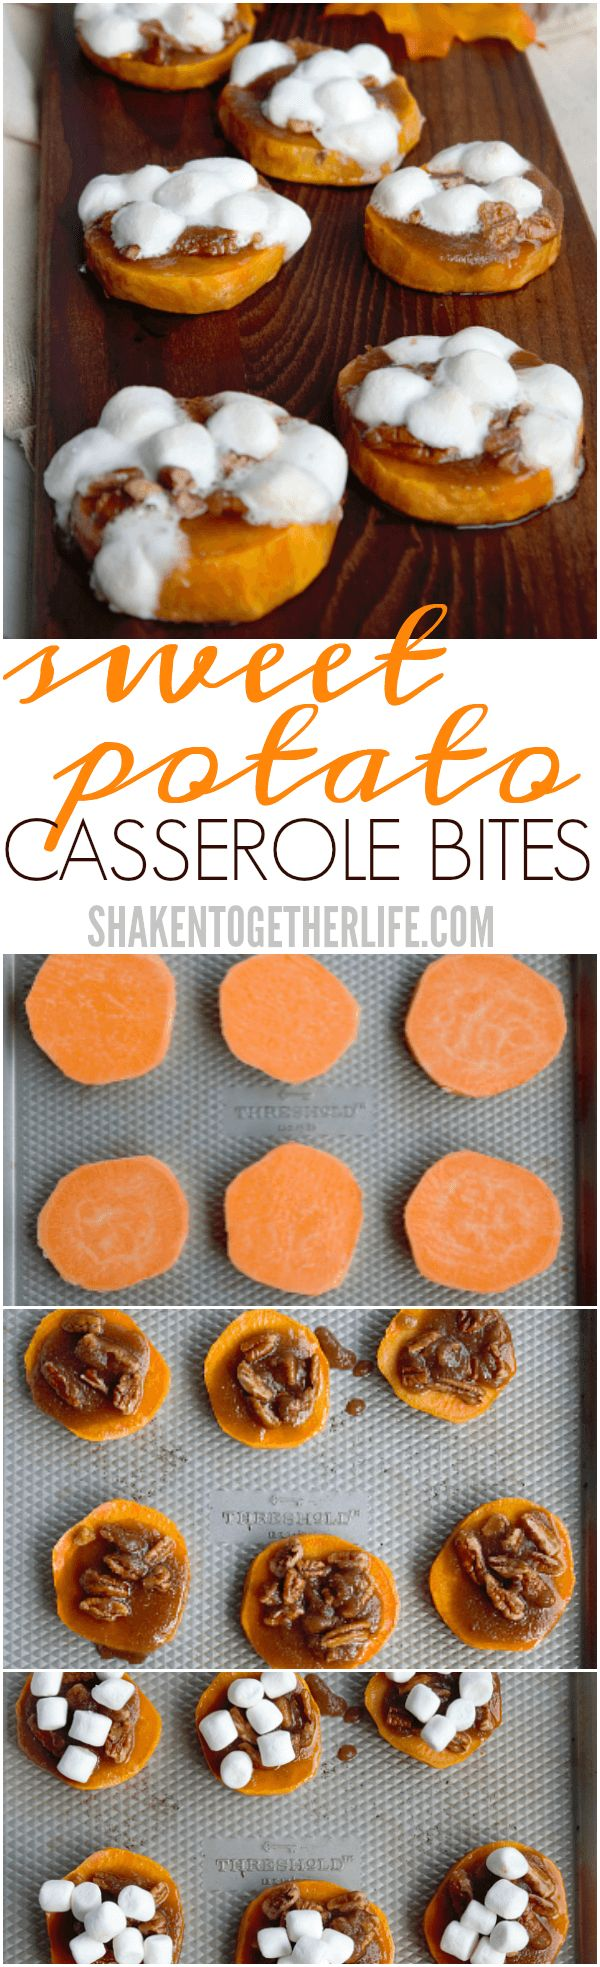 Sweet Potato Casserole Bites have all the taste of classic sweet potato casserole, but with only 5 ingredients, this holiday dish is done is no time!